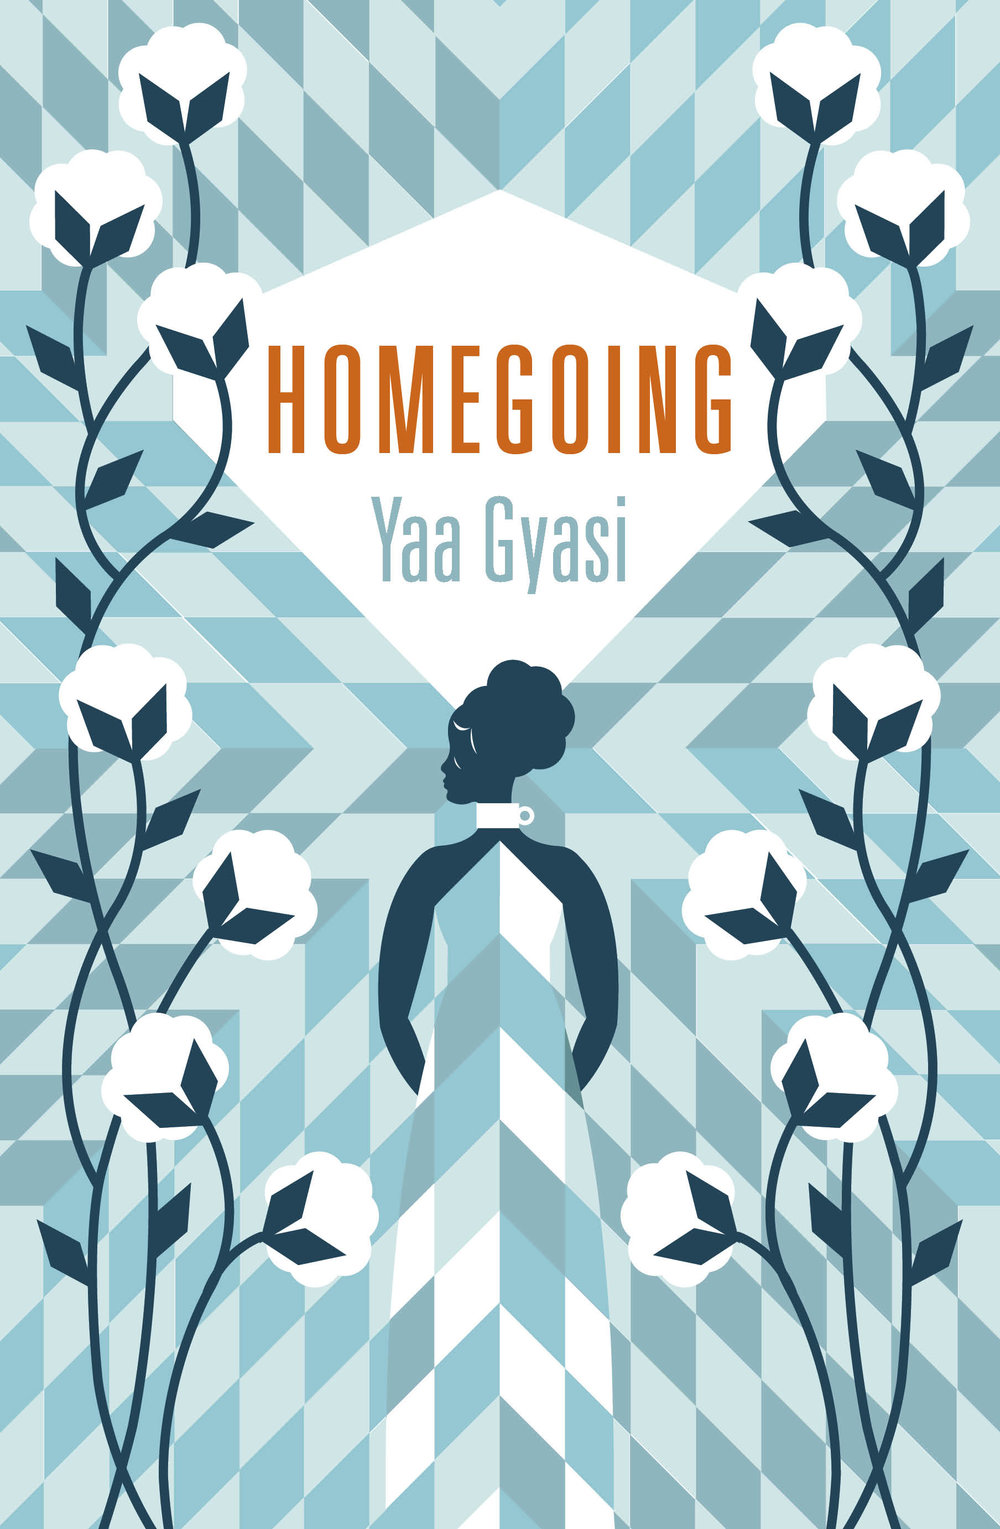 Homegoing 9.jpg